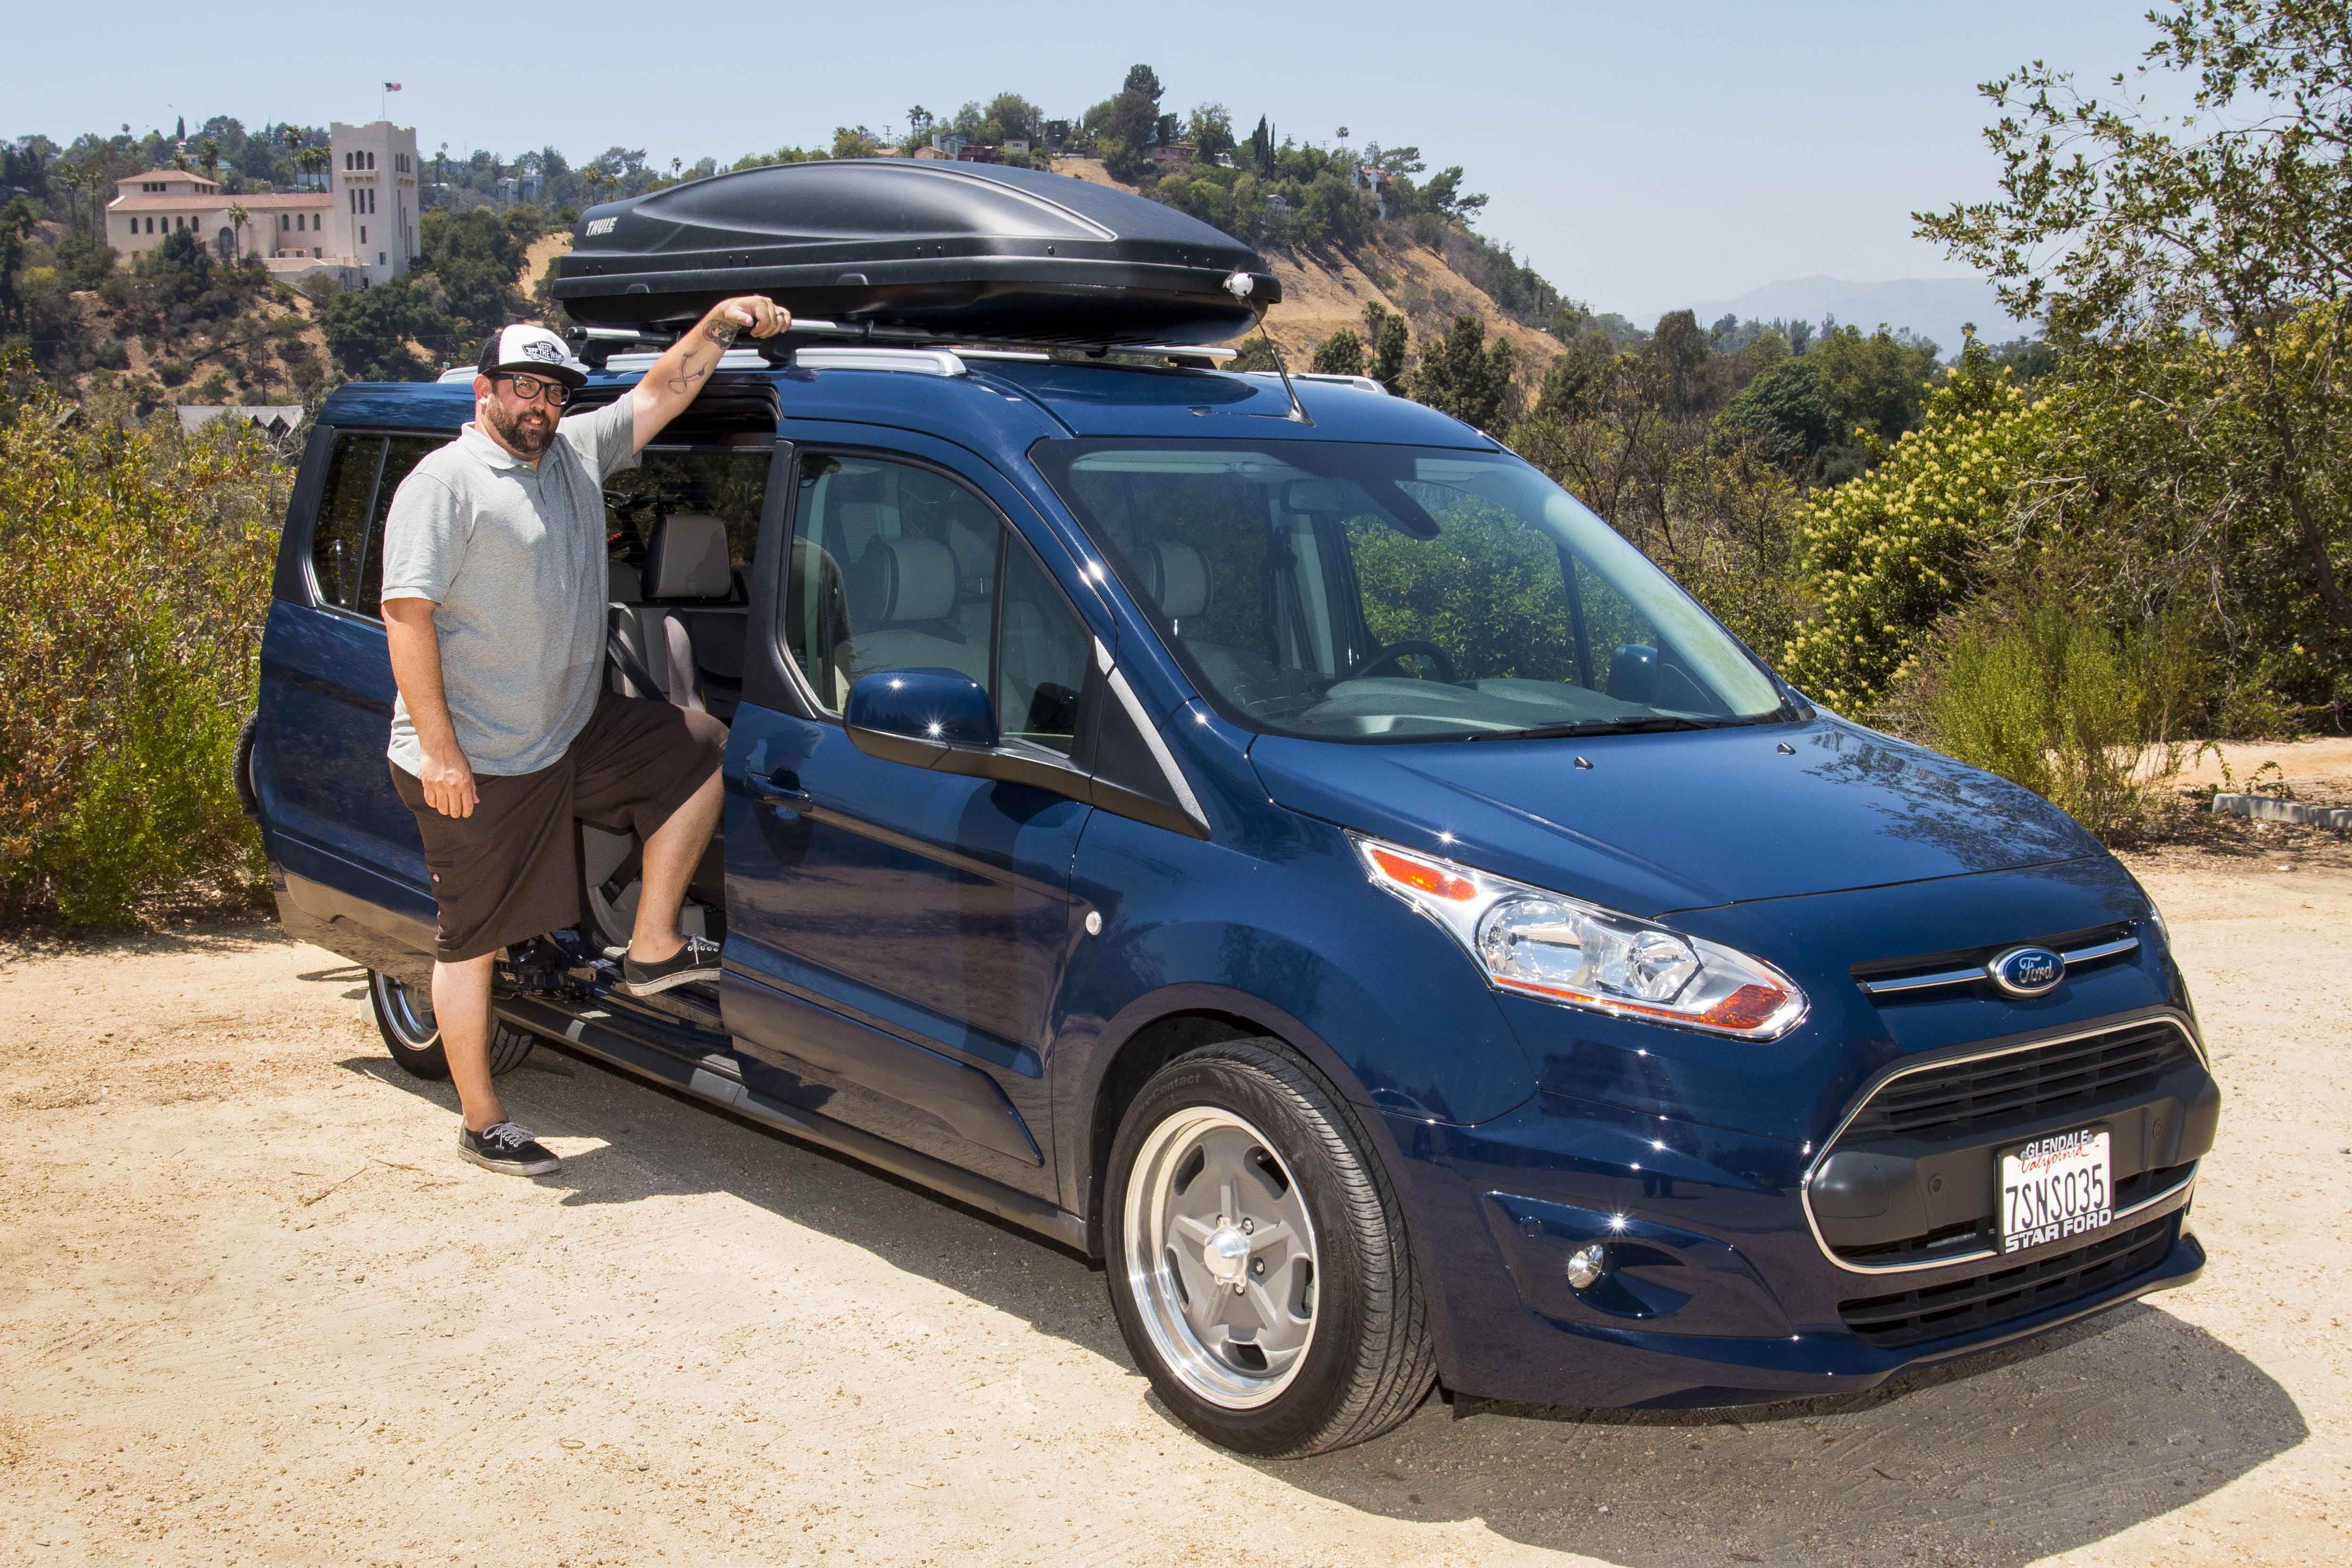 FORD TRANSIT CONNECT WAGON HELPS BALANCE WORK AND PLAY ...